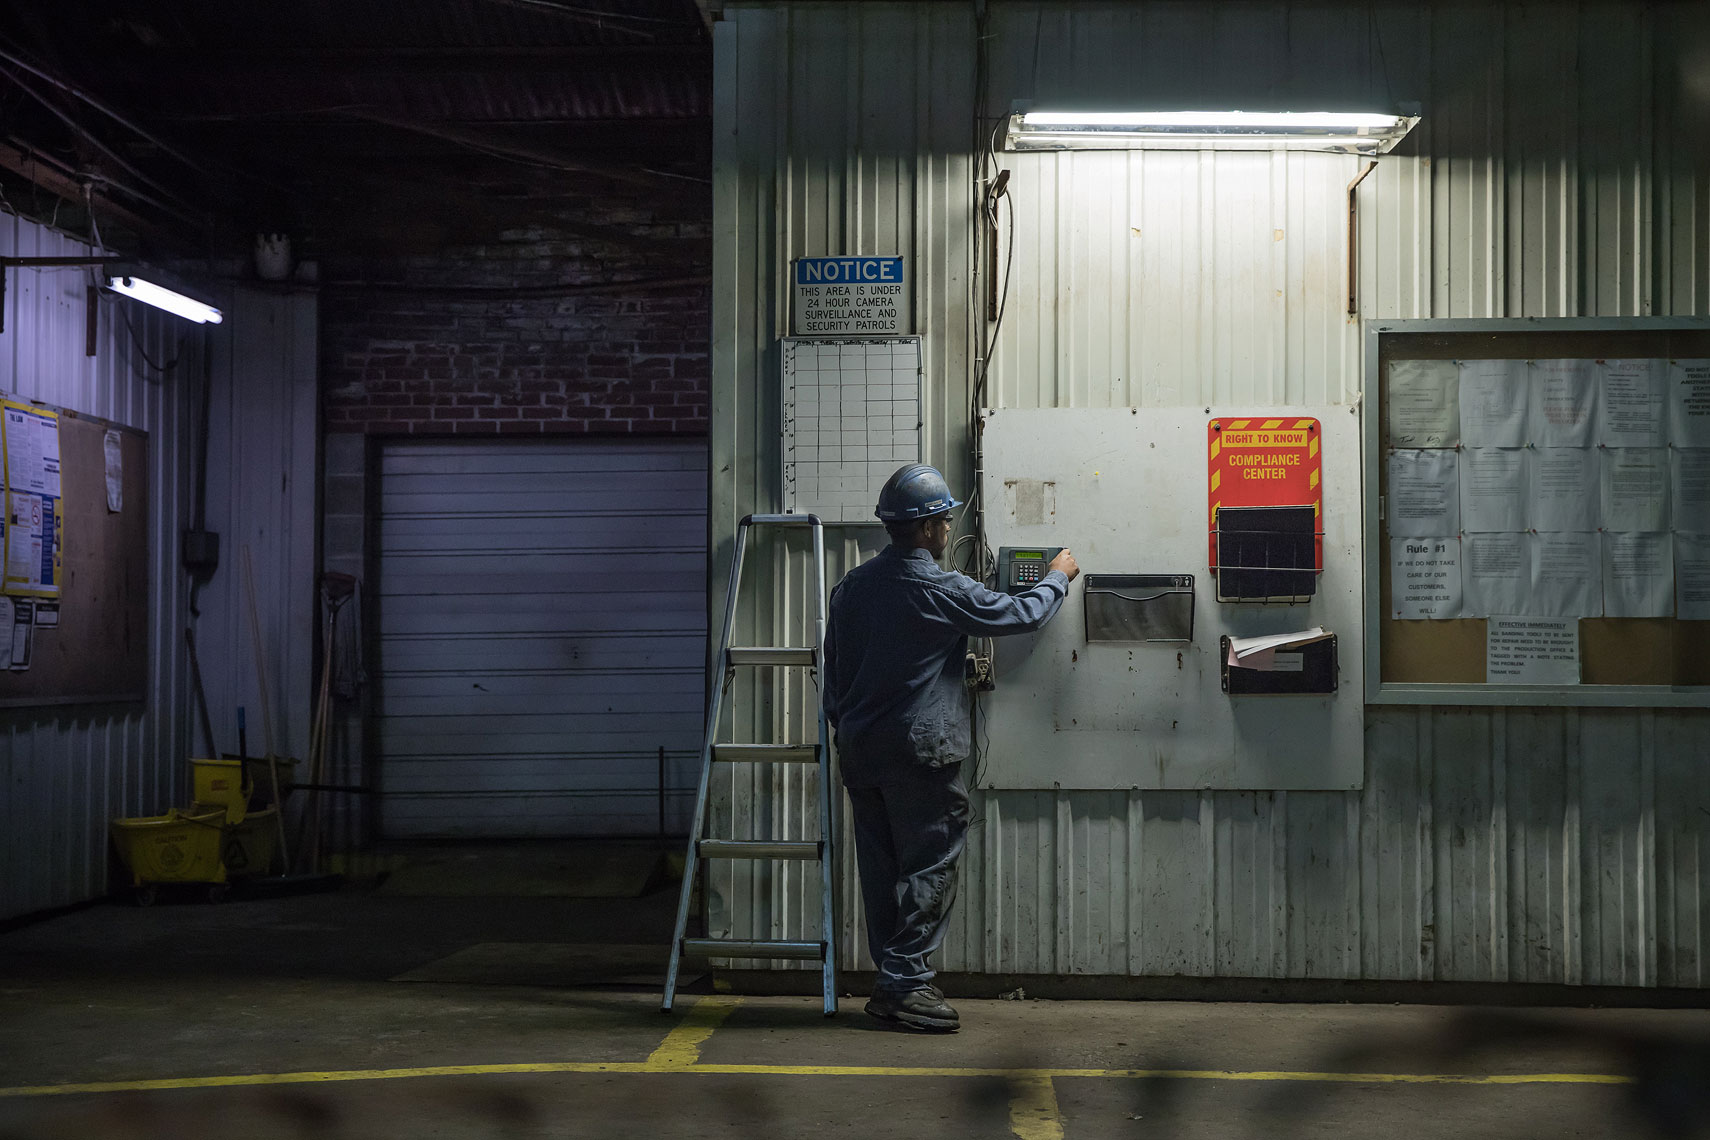 Industrial worker clocking in | Gamut | John Fedele Industrial Photography